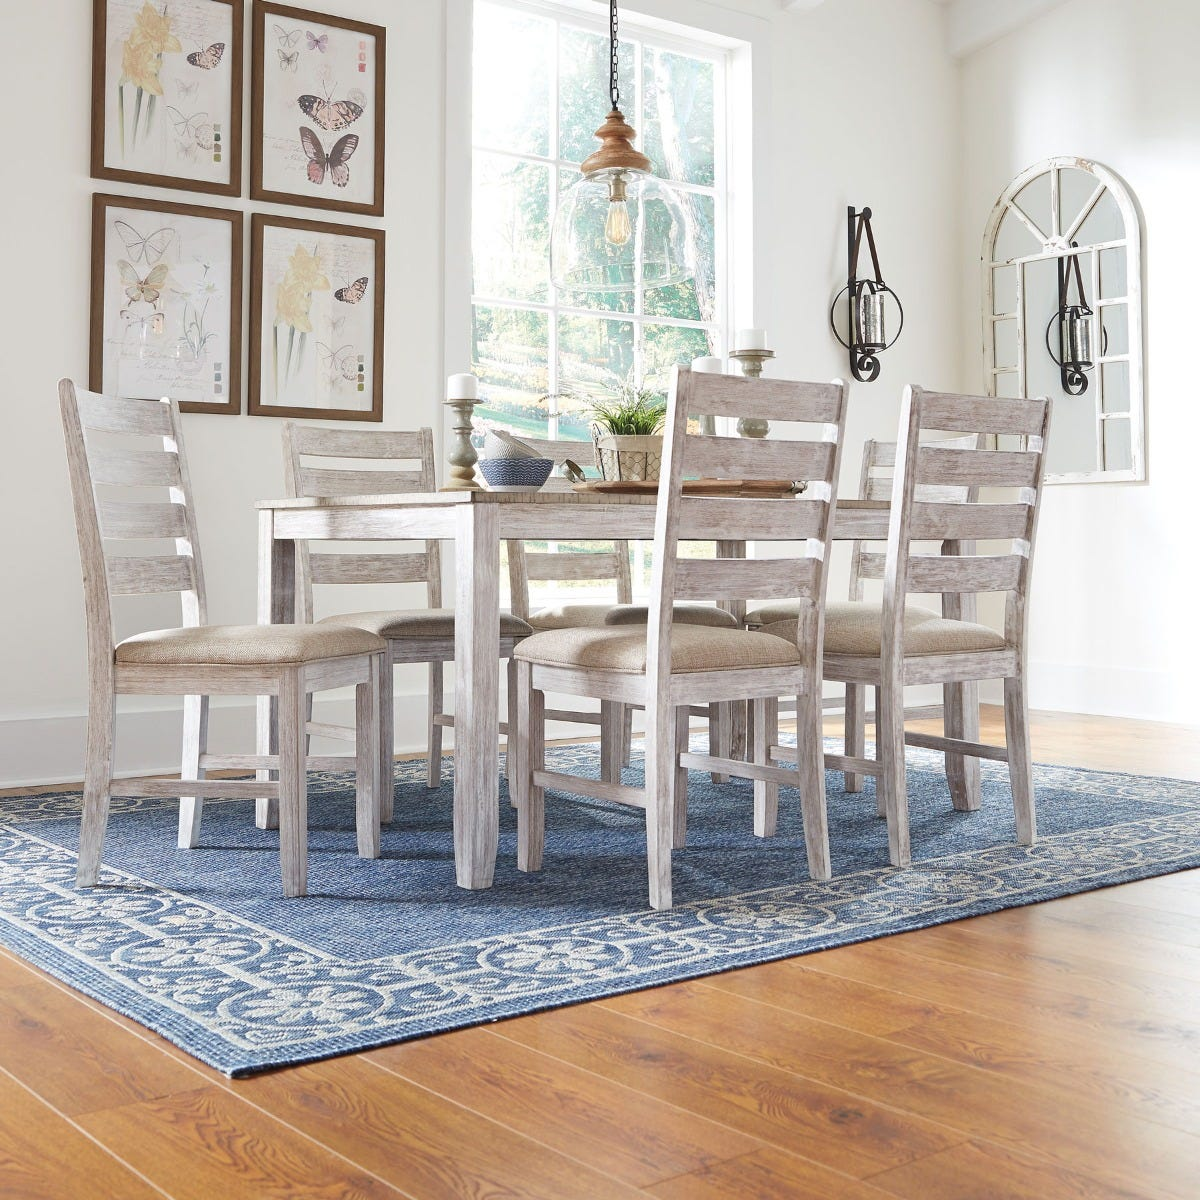 Rusty Antique White 7 Piece Dining Table Set